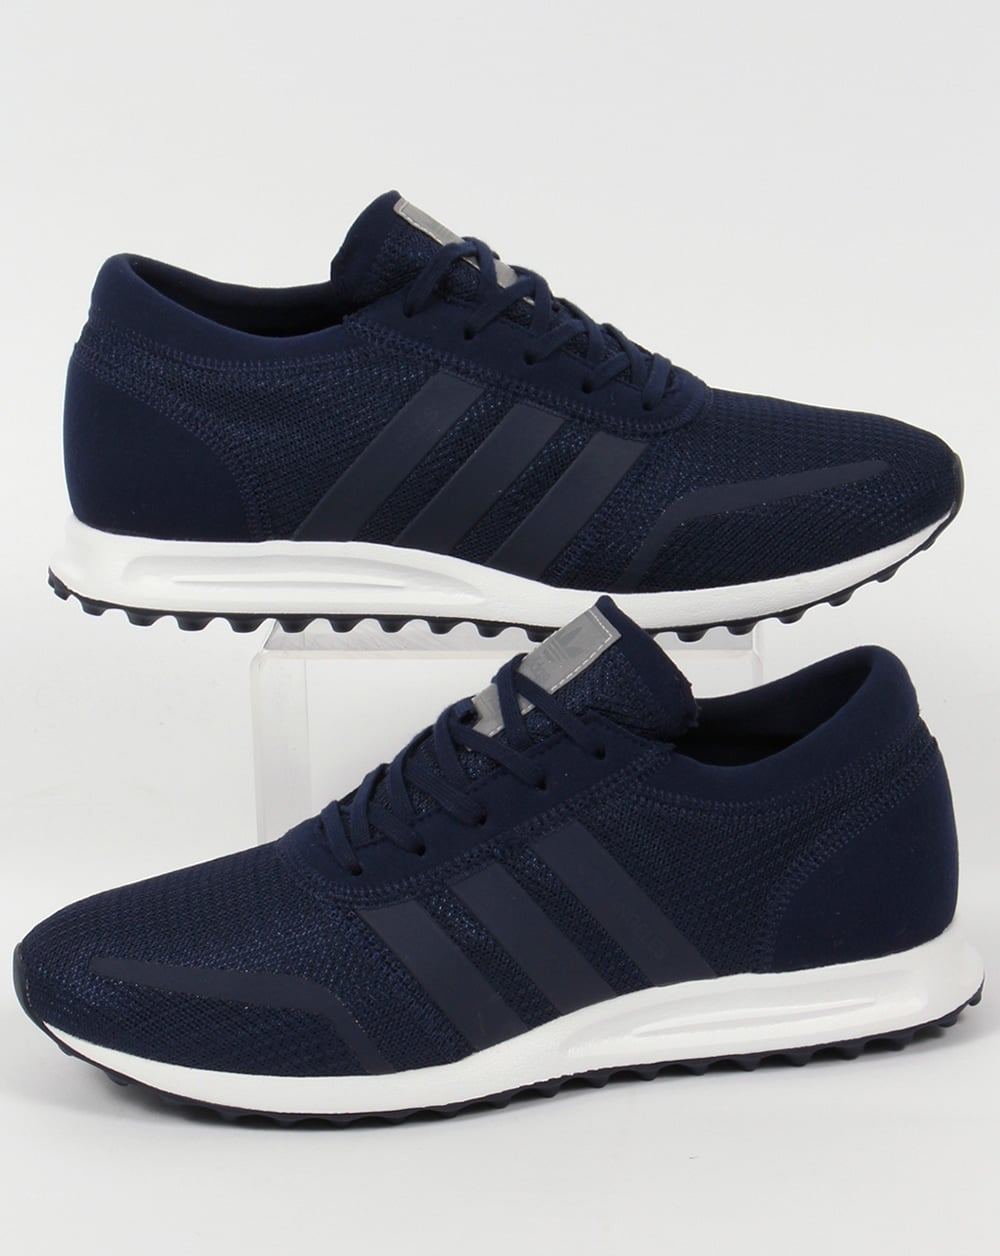 buy online dce60 1de84 adidas Trainers Adidas Los Angeles Trainers Navy